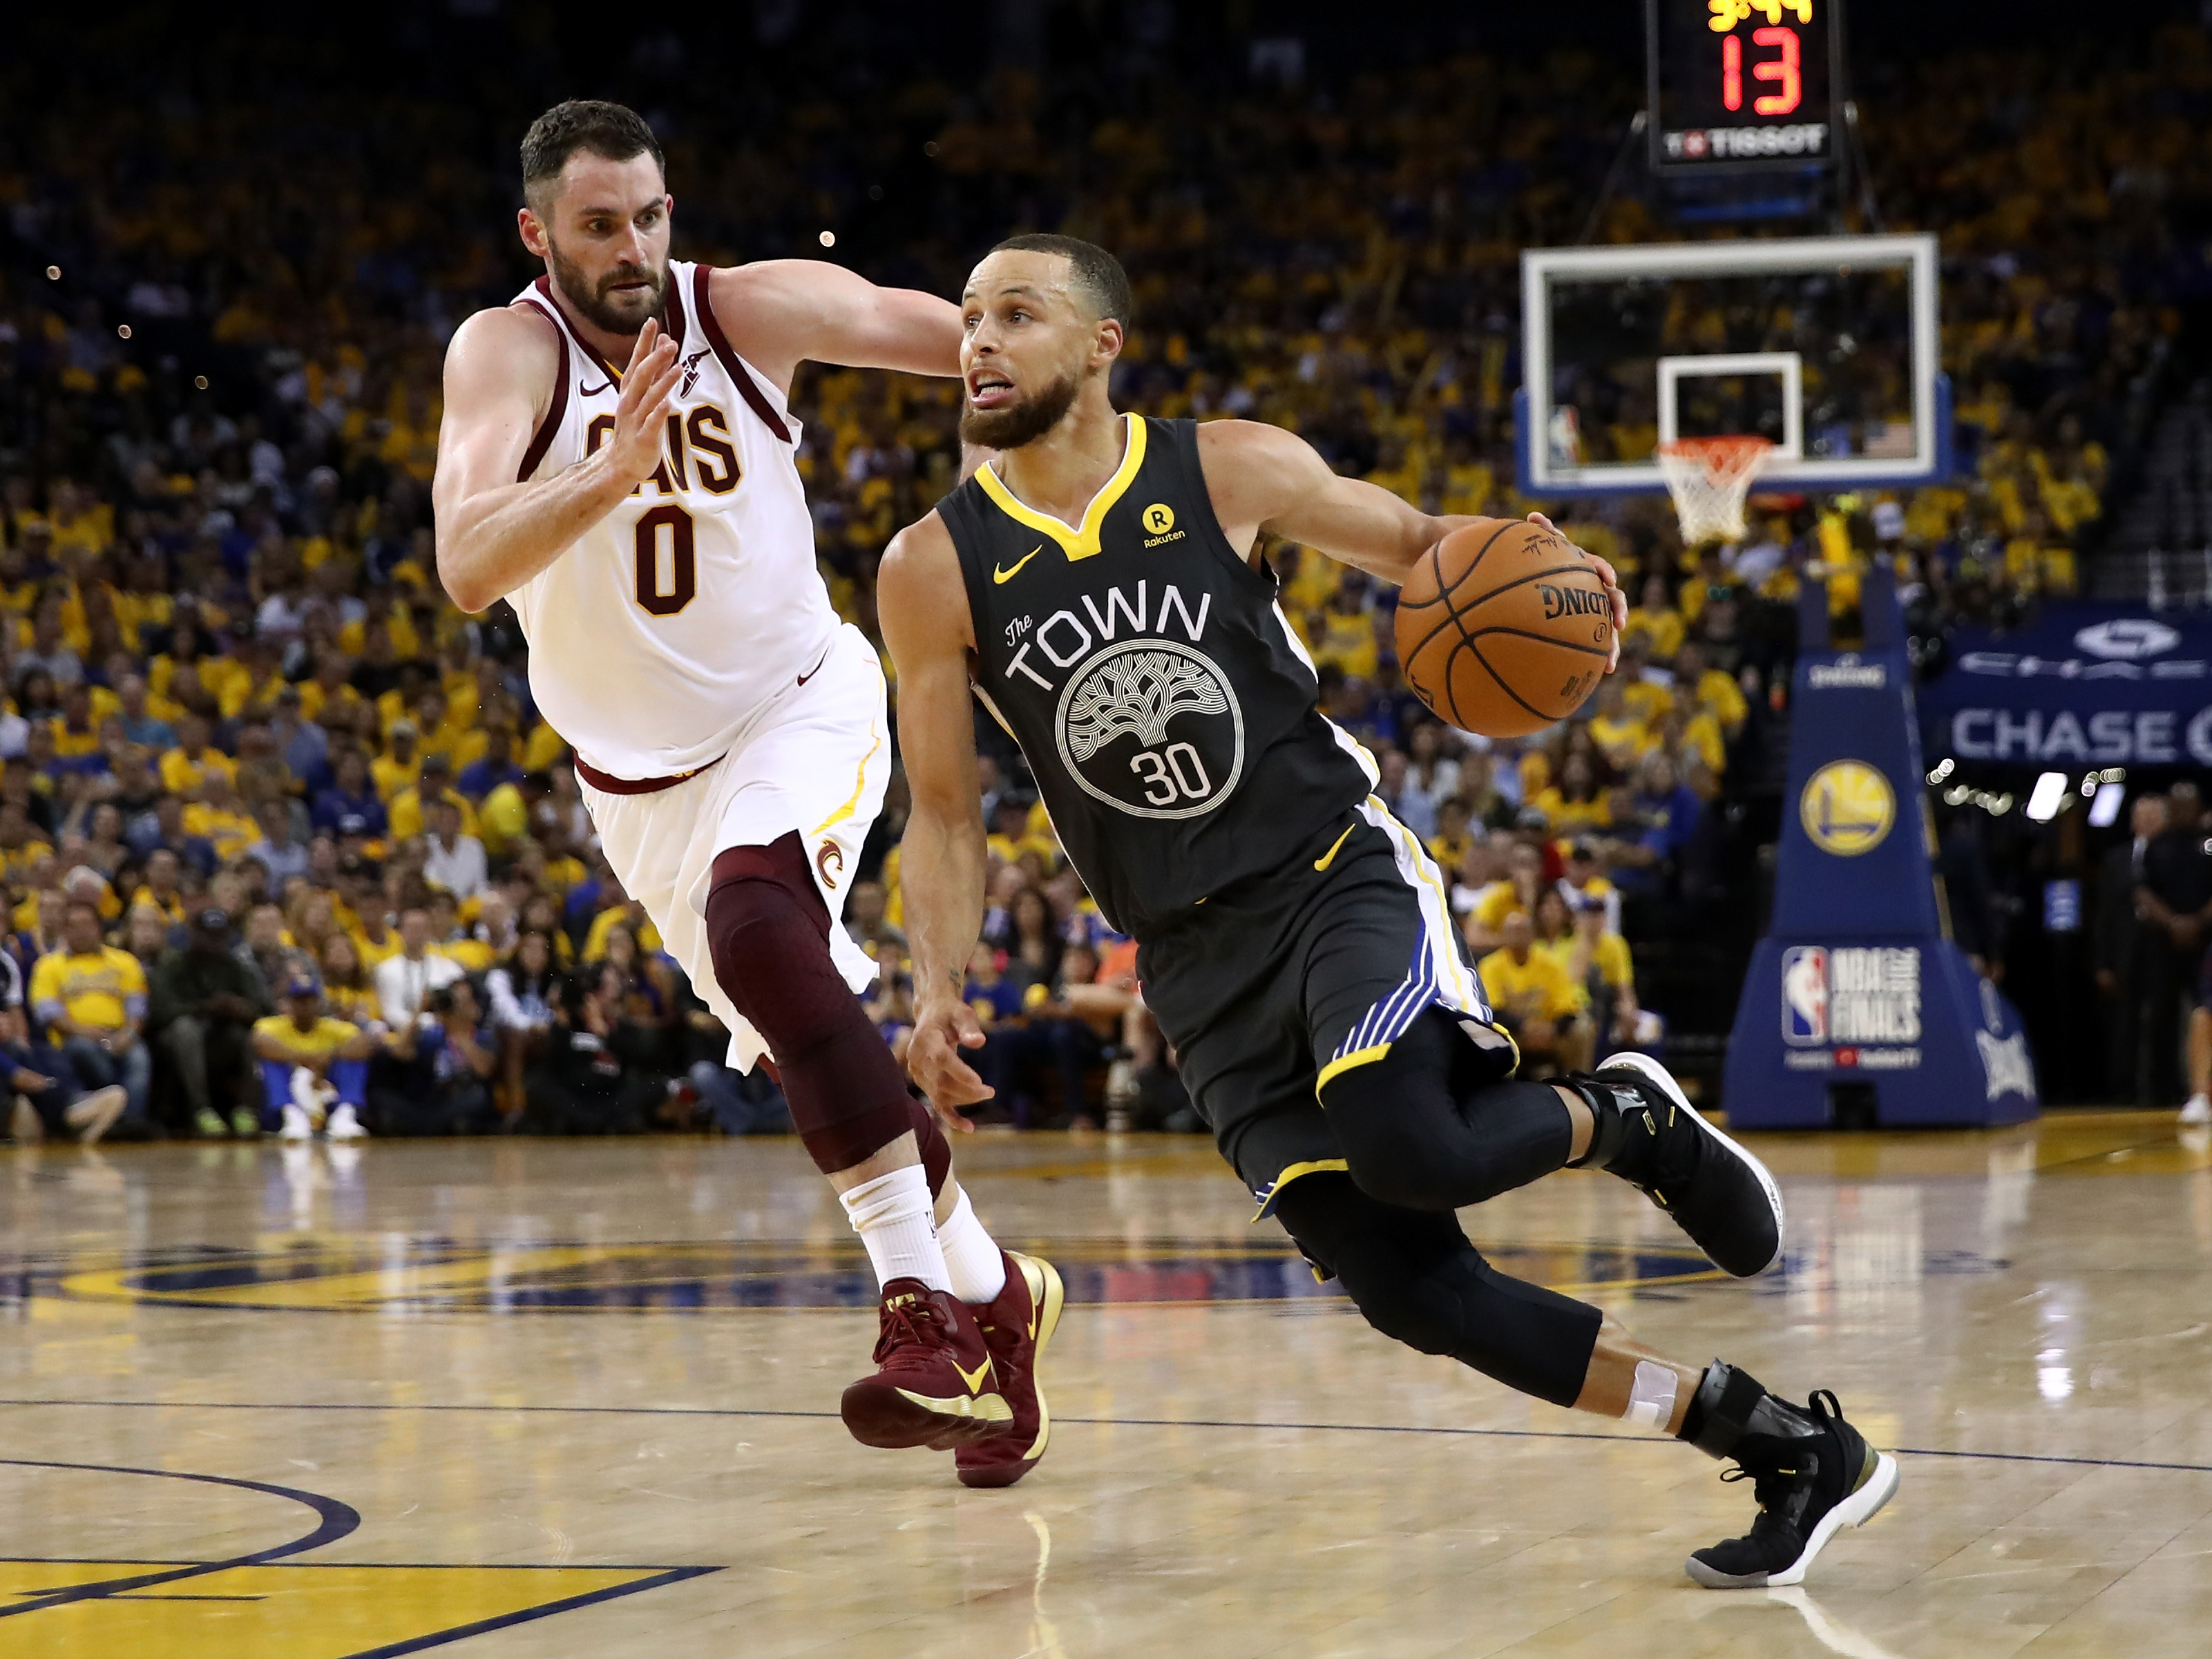 Warriors sweep Cavs to win back-to-back NBA championships